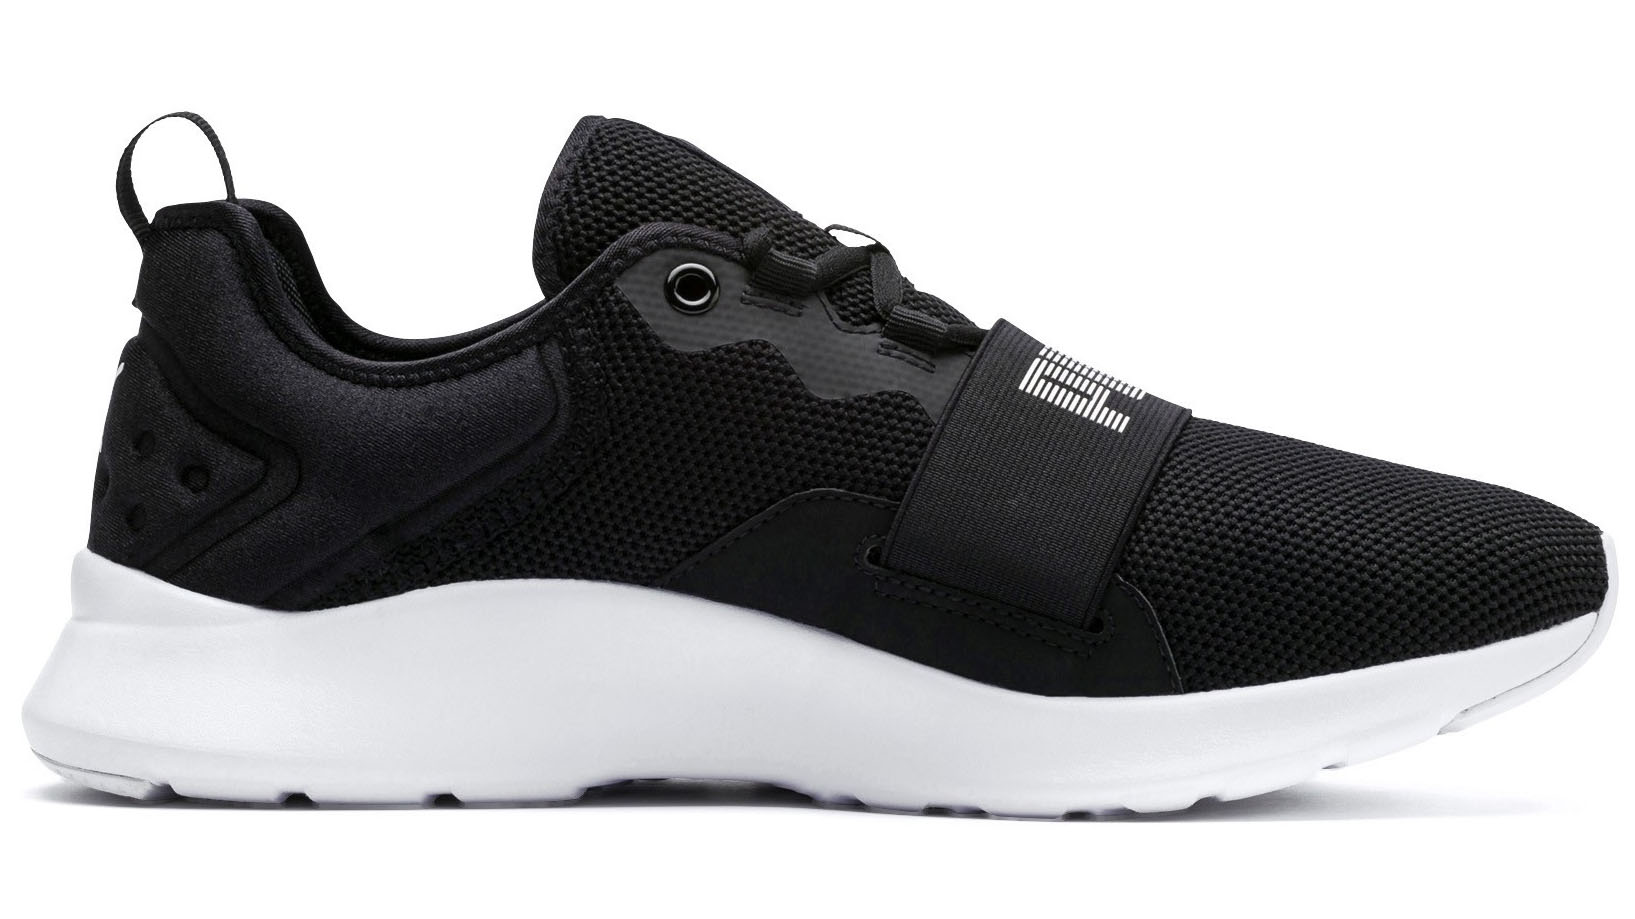 c5cacb292c9 Mens Shoes Wired Pro colore Black - Puma - SportIT.com